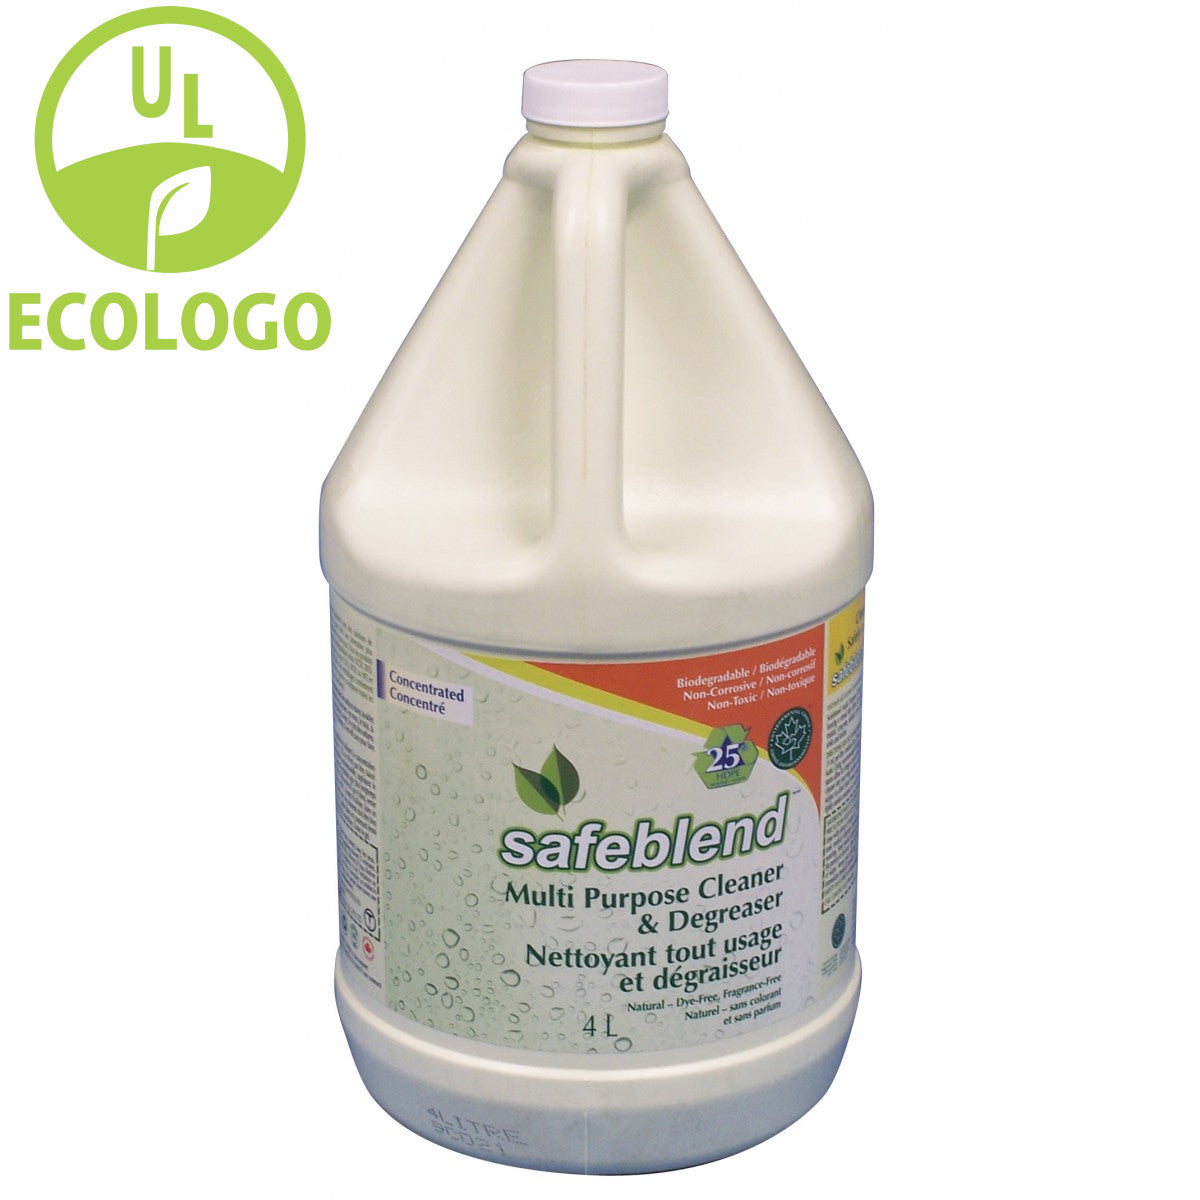 Safeblend EcoLogo Multi-Purpose Cleaner/Degreaser (Fragrance Free) - 4L - Super Vacs